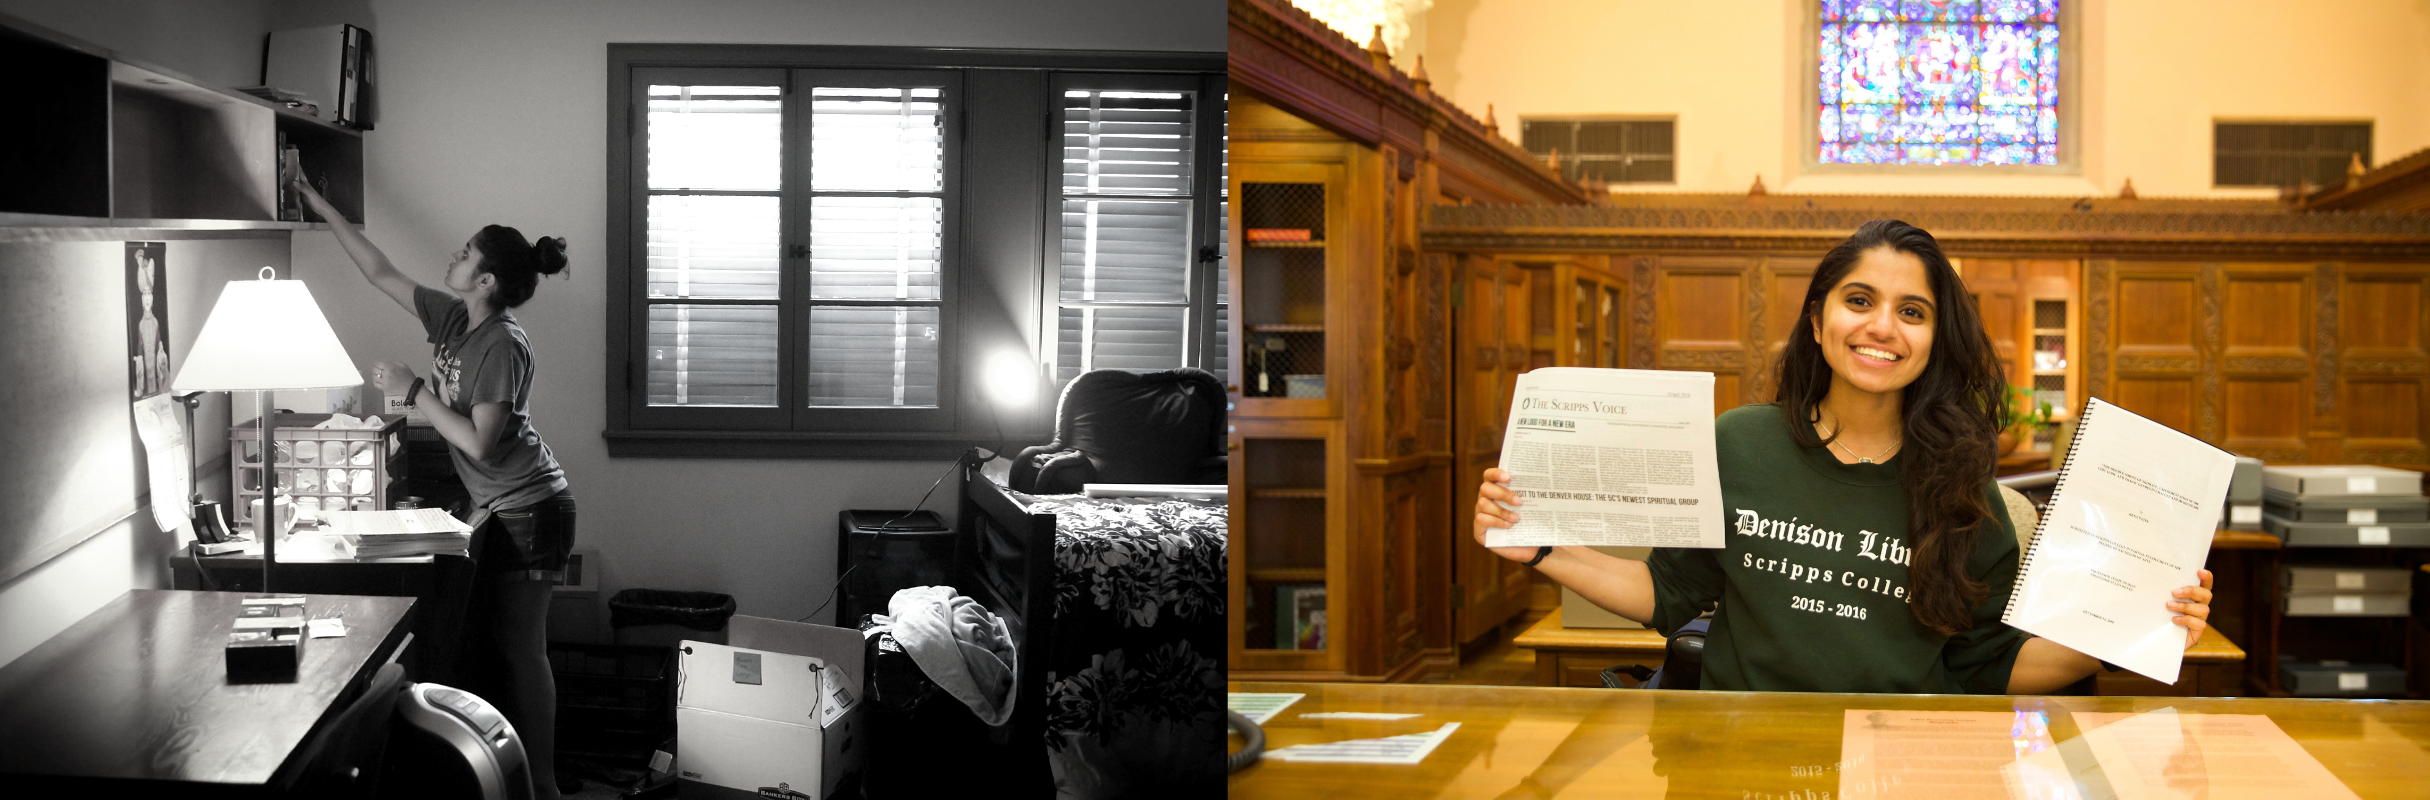 A black and white picture of a young South Asian woman in her dorm room next to a color picture of the young woman smiling at a table while holding up papers in a library.